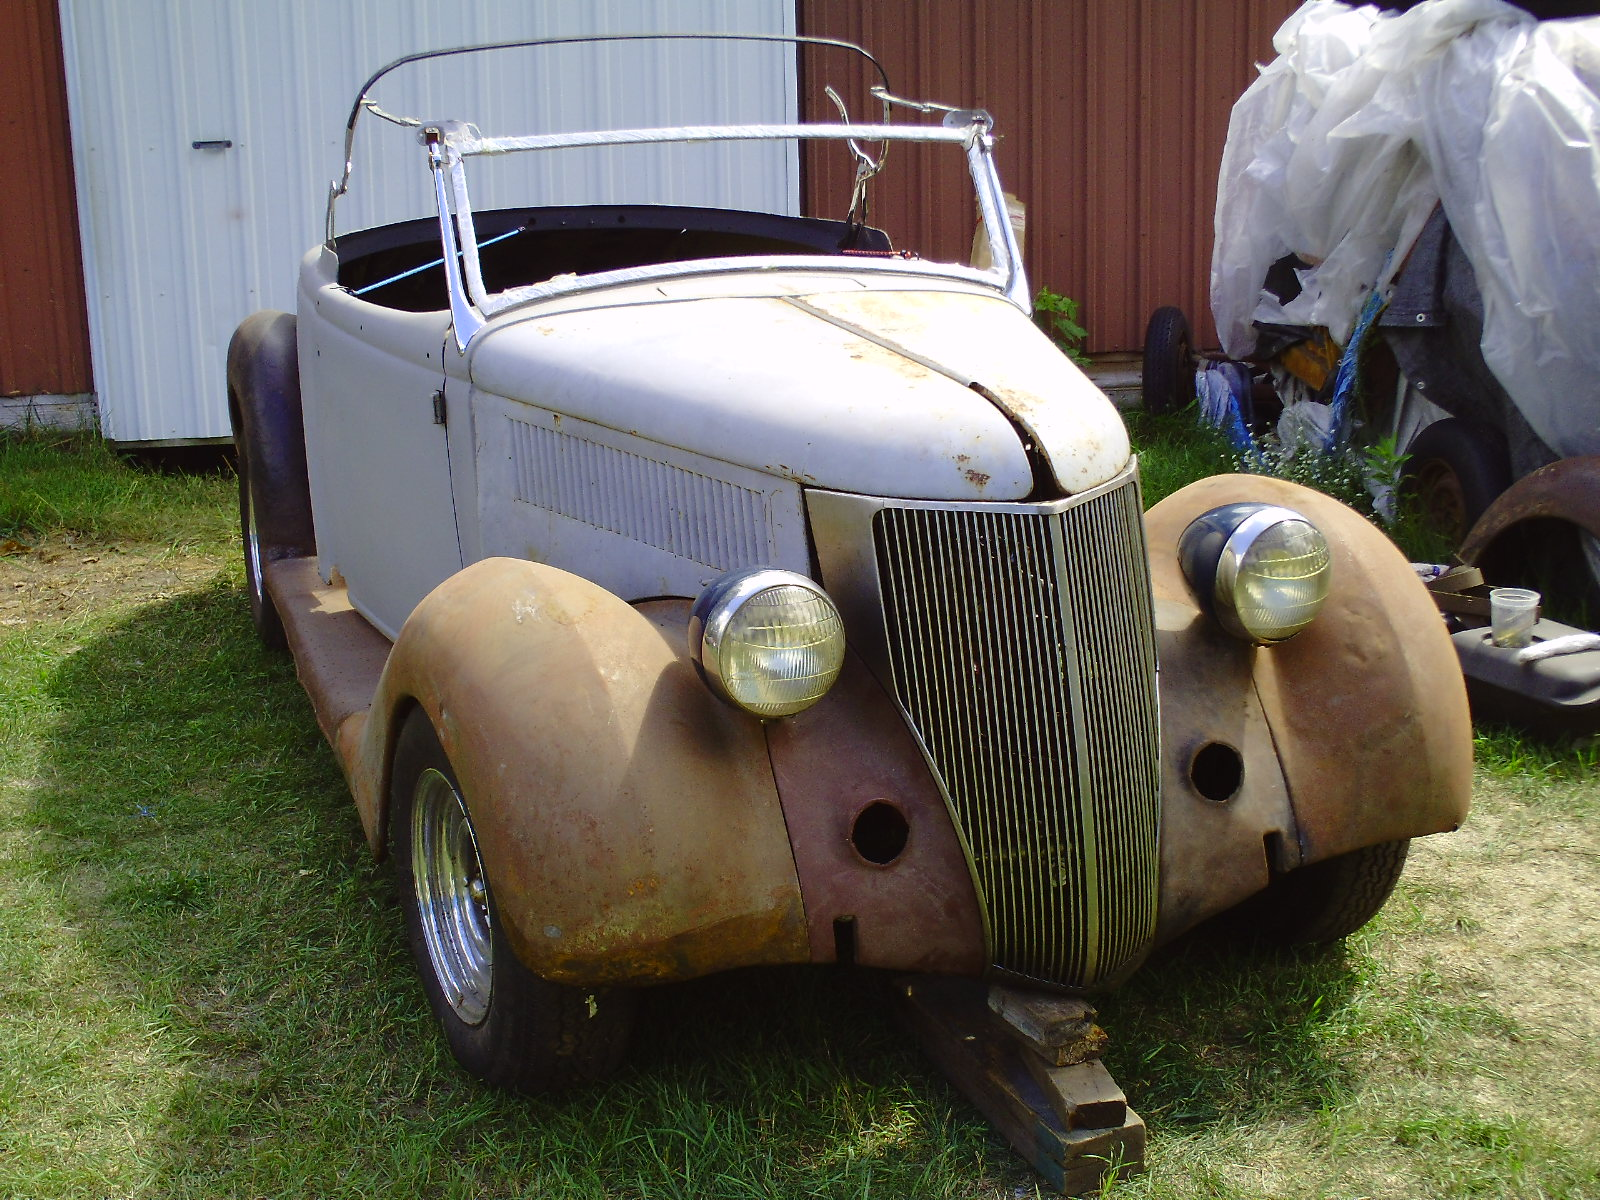 1936 ford roadster project - Ford and Mercury - 1932 to 1953 ...